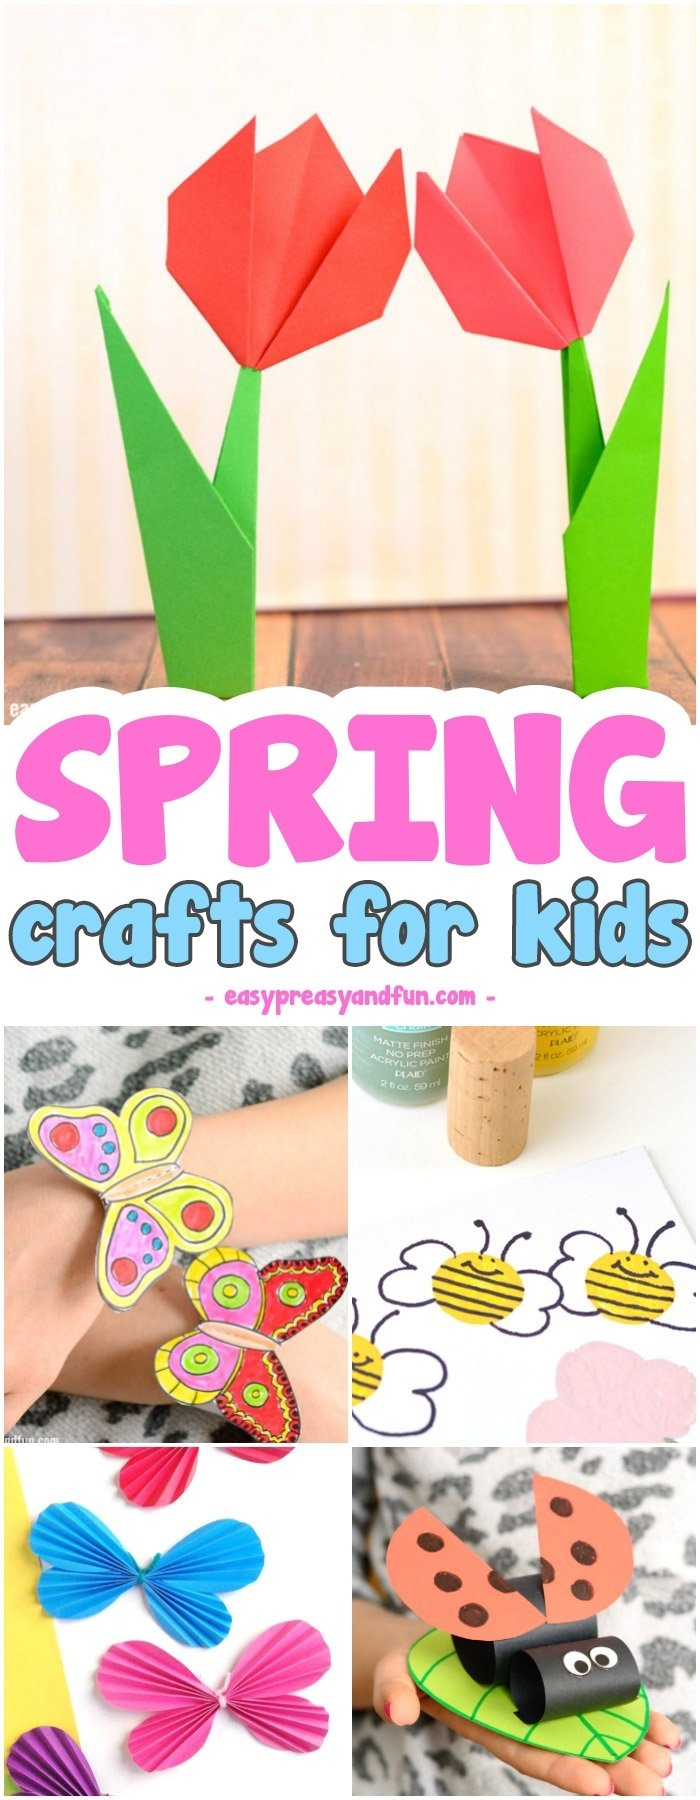 10 Fashionable Spring Arts And Crafts Ideas spring crafts for kids art and craft project ideas for all ages 5 2020